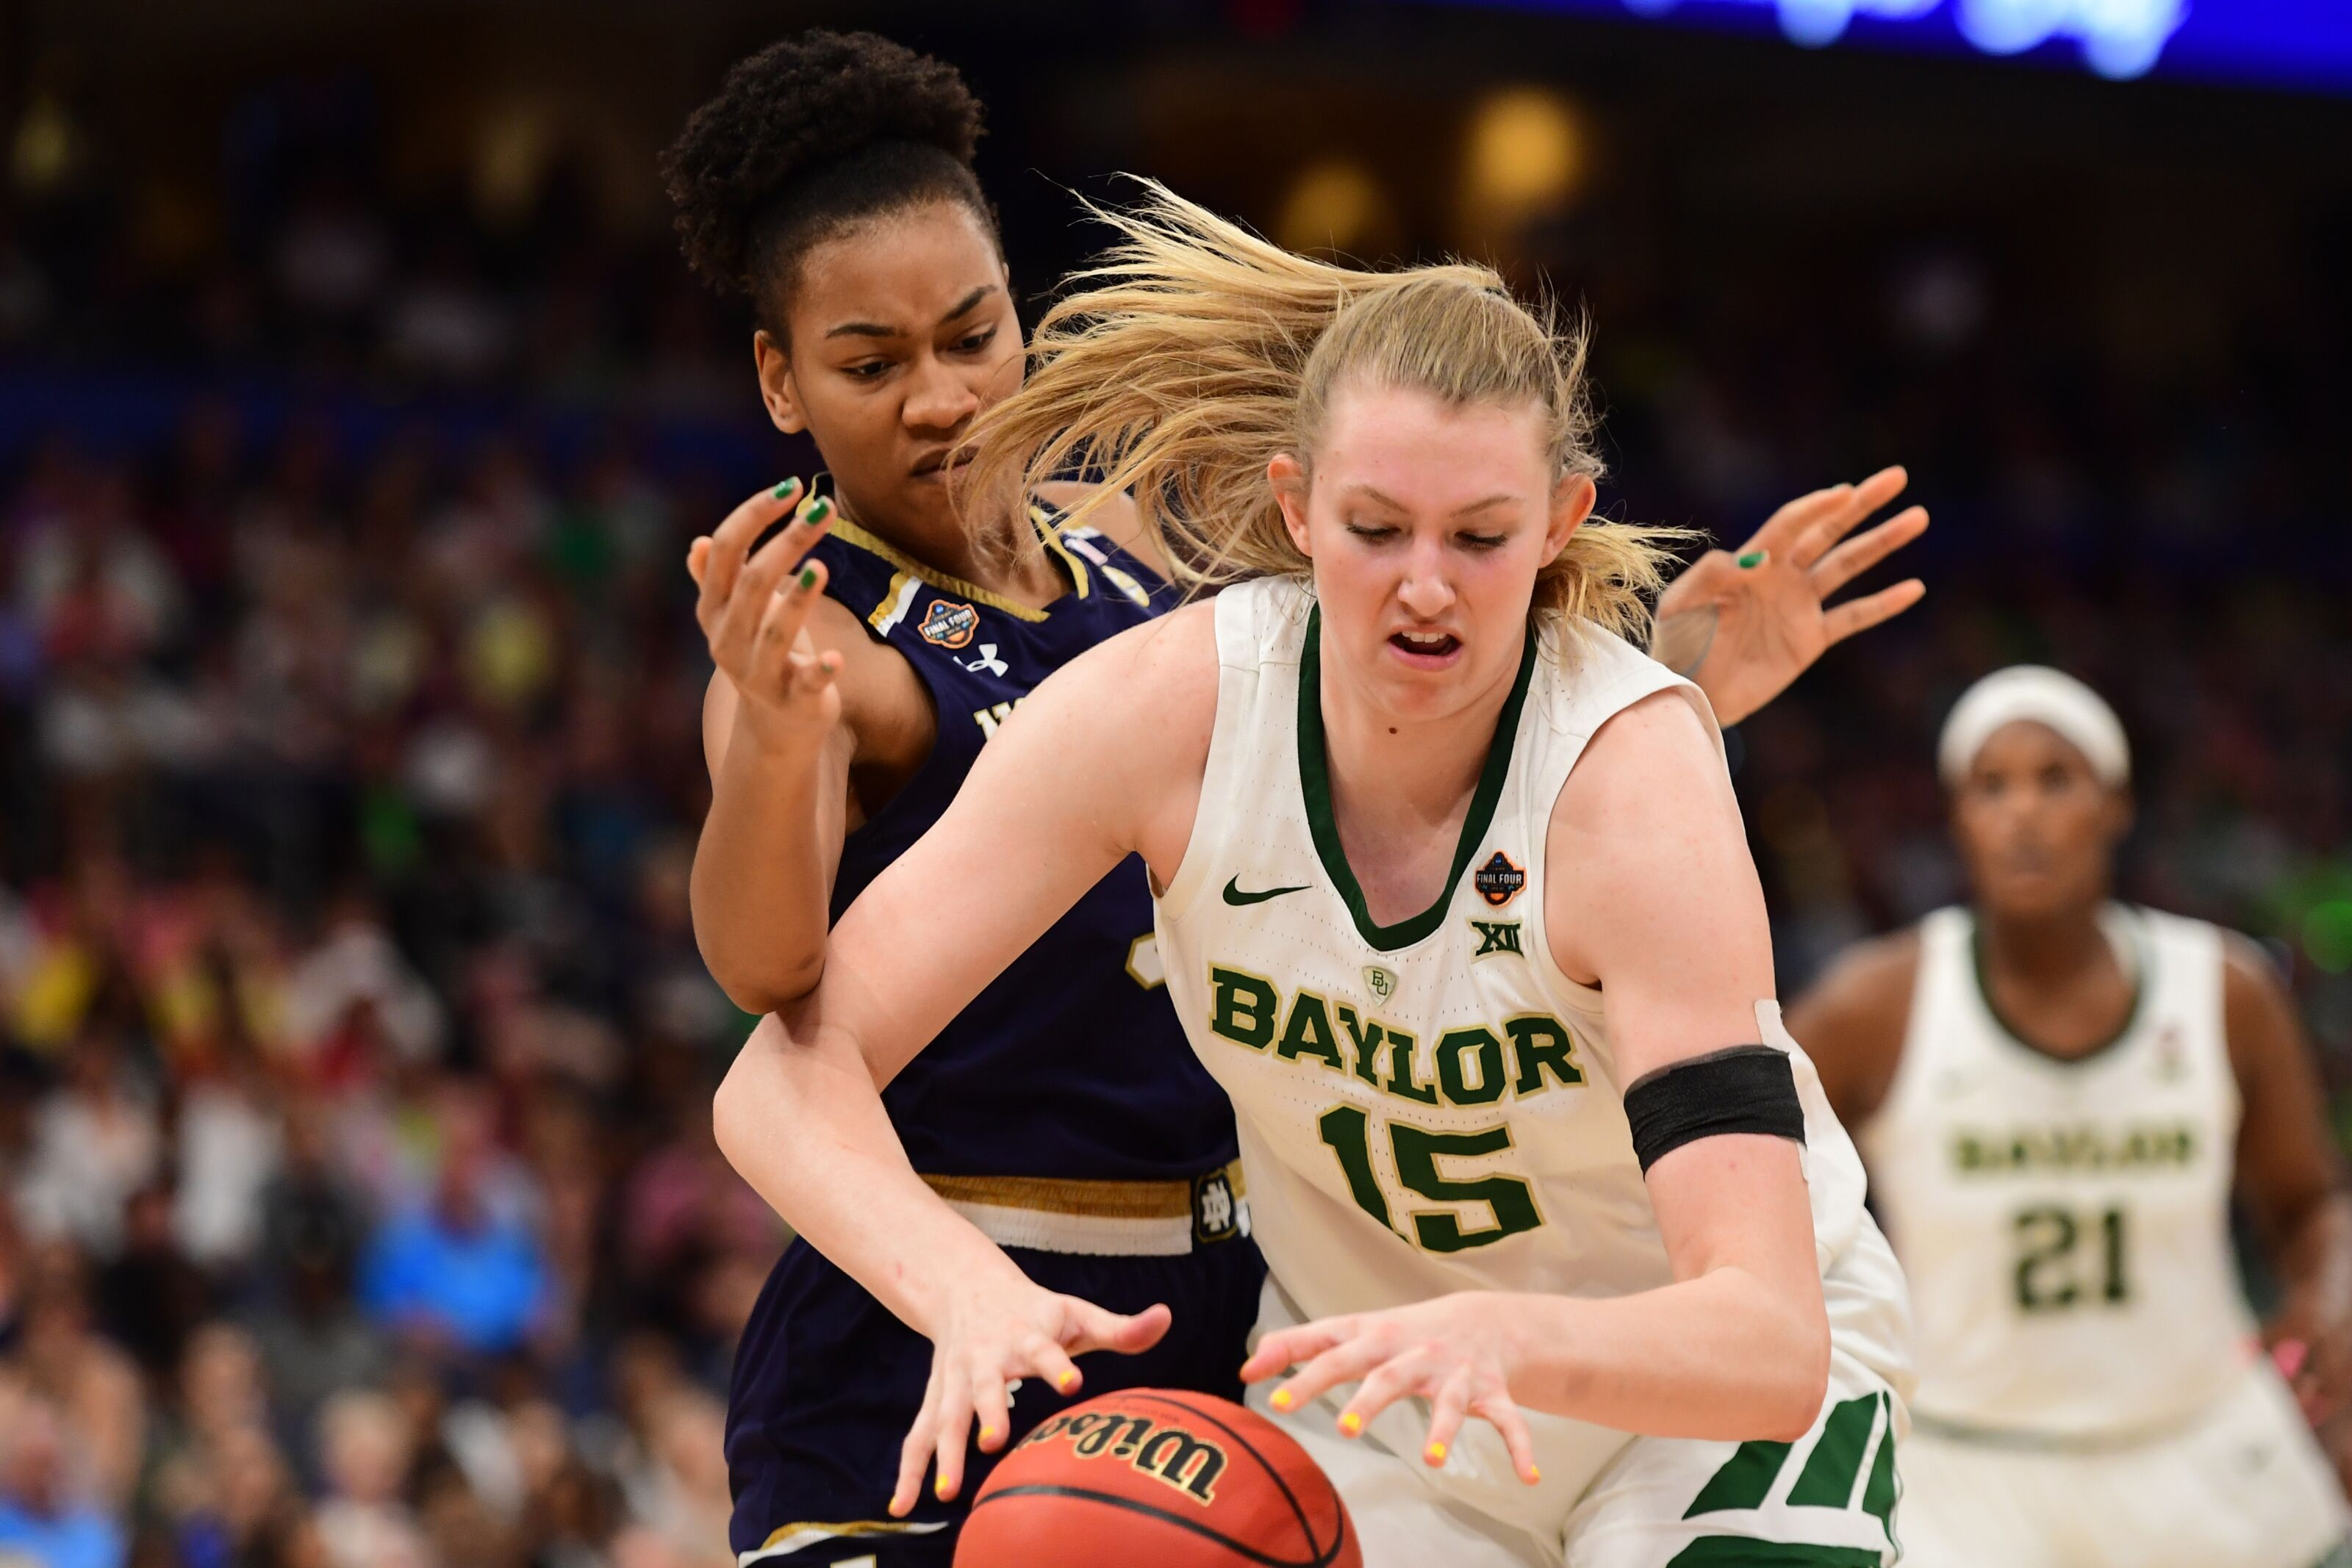 'It's just gonna be really fun': Cox sisters to face off in Baylor's Type 1 Diabetes Awareness Game